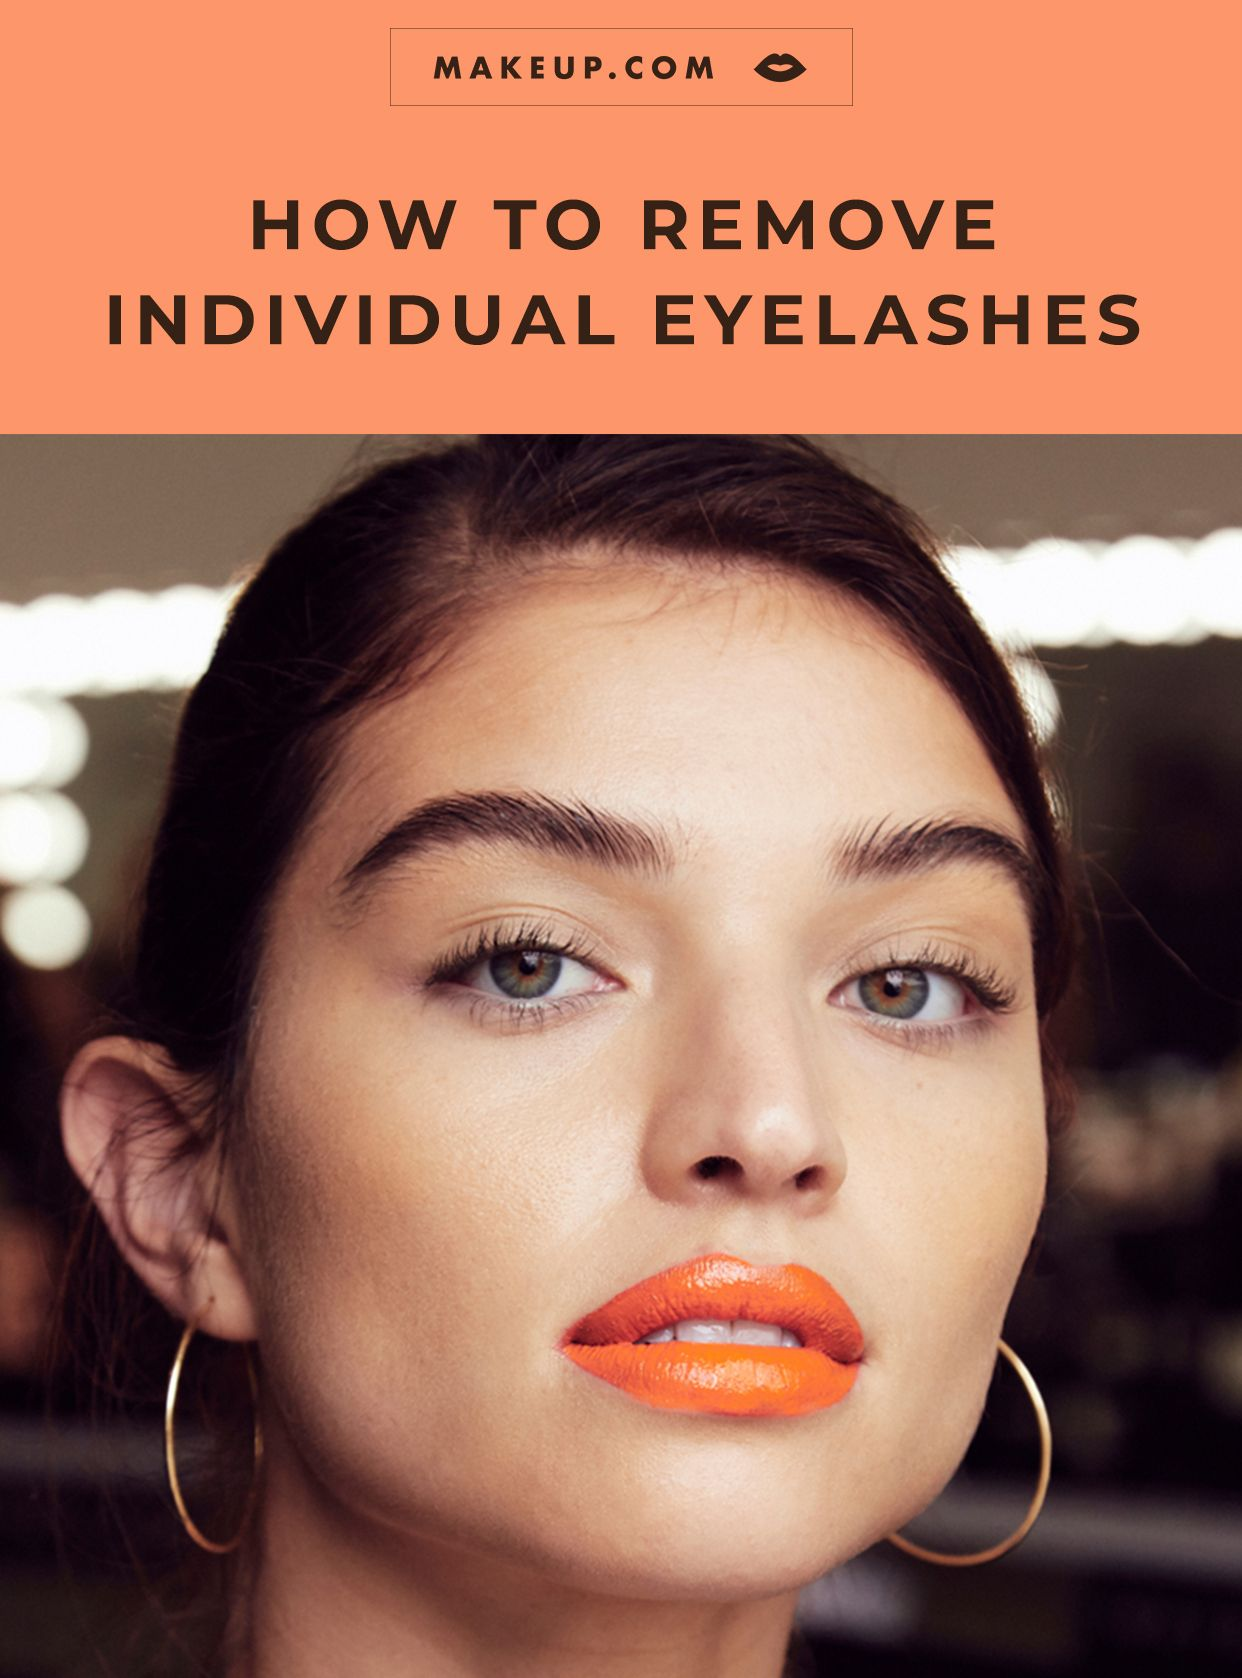 How to remove individual eyelash extensions at home